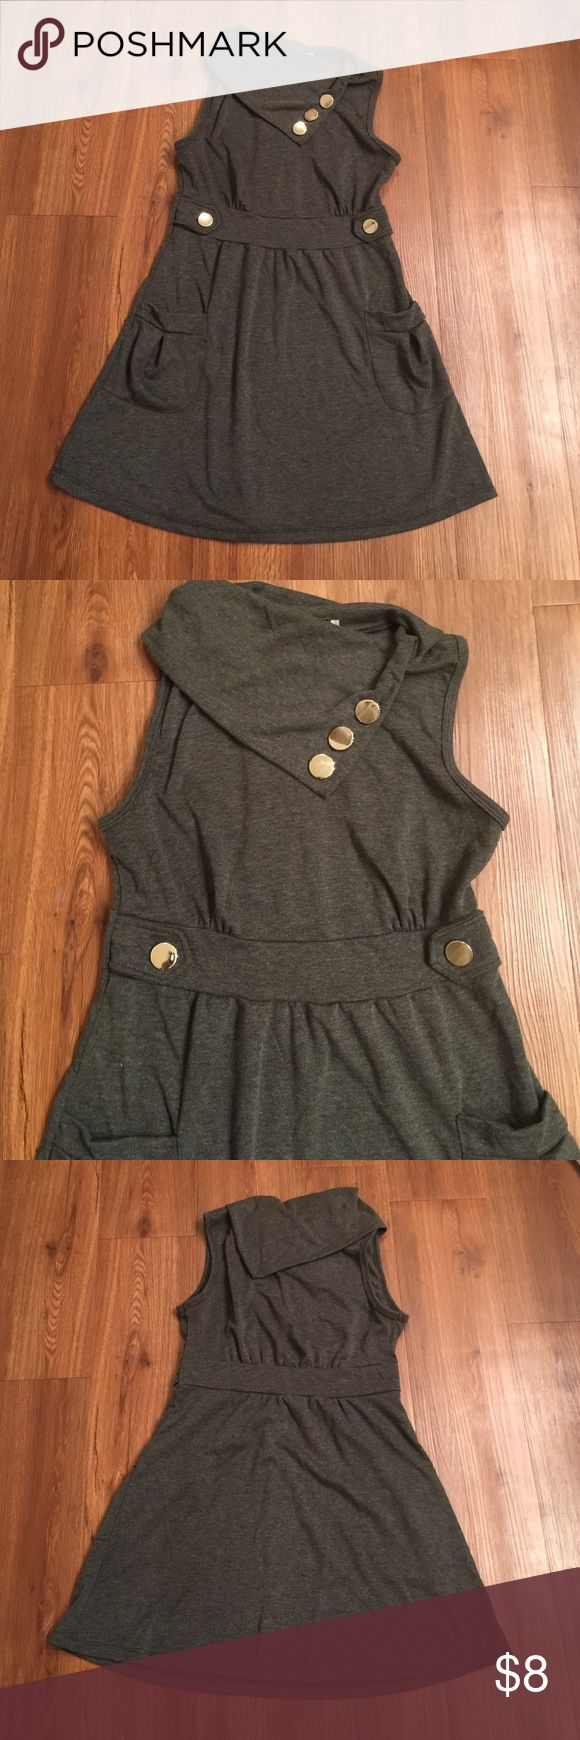 Fold over collar dress Size large. In great condition. Purchased from Body Central. Body Central Dresses